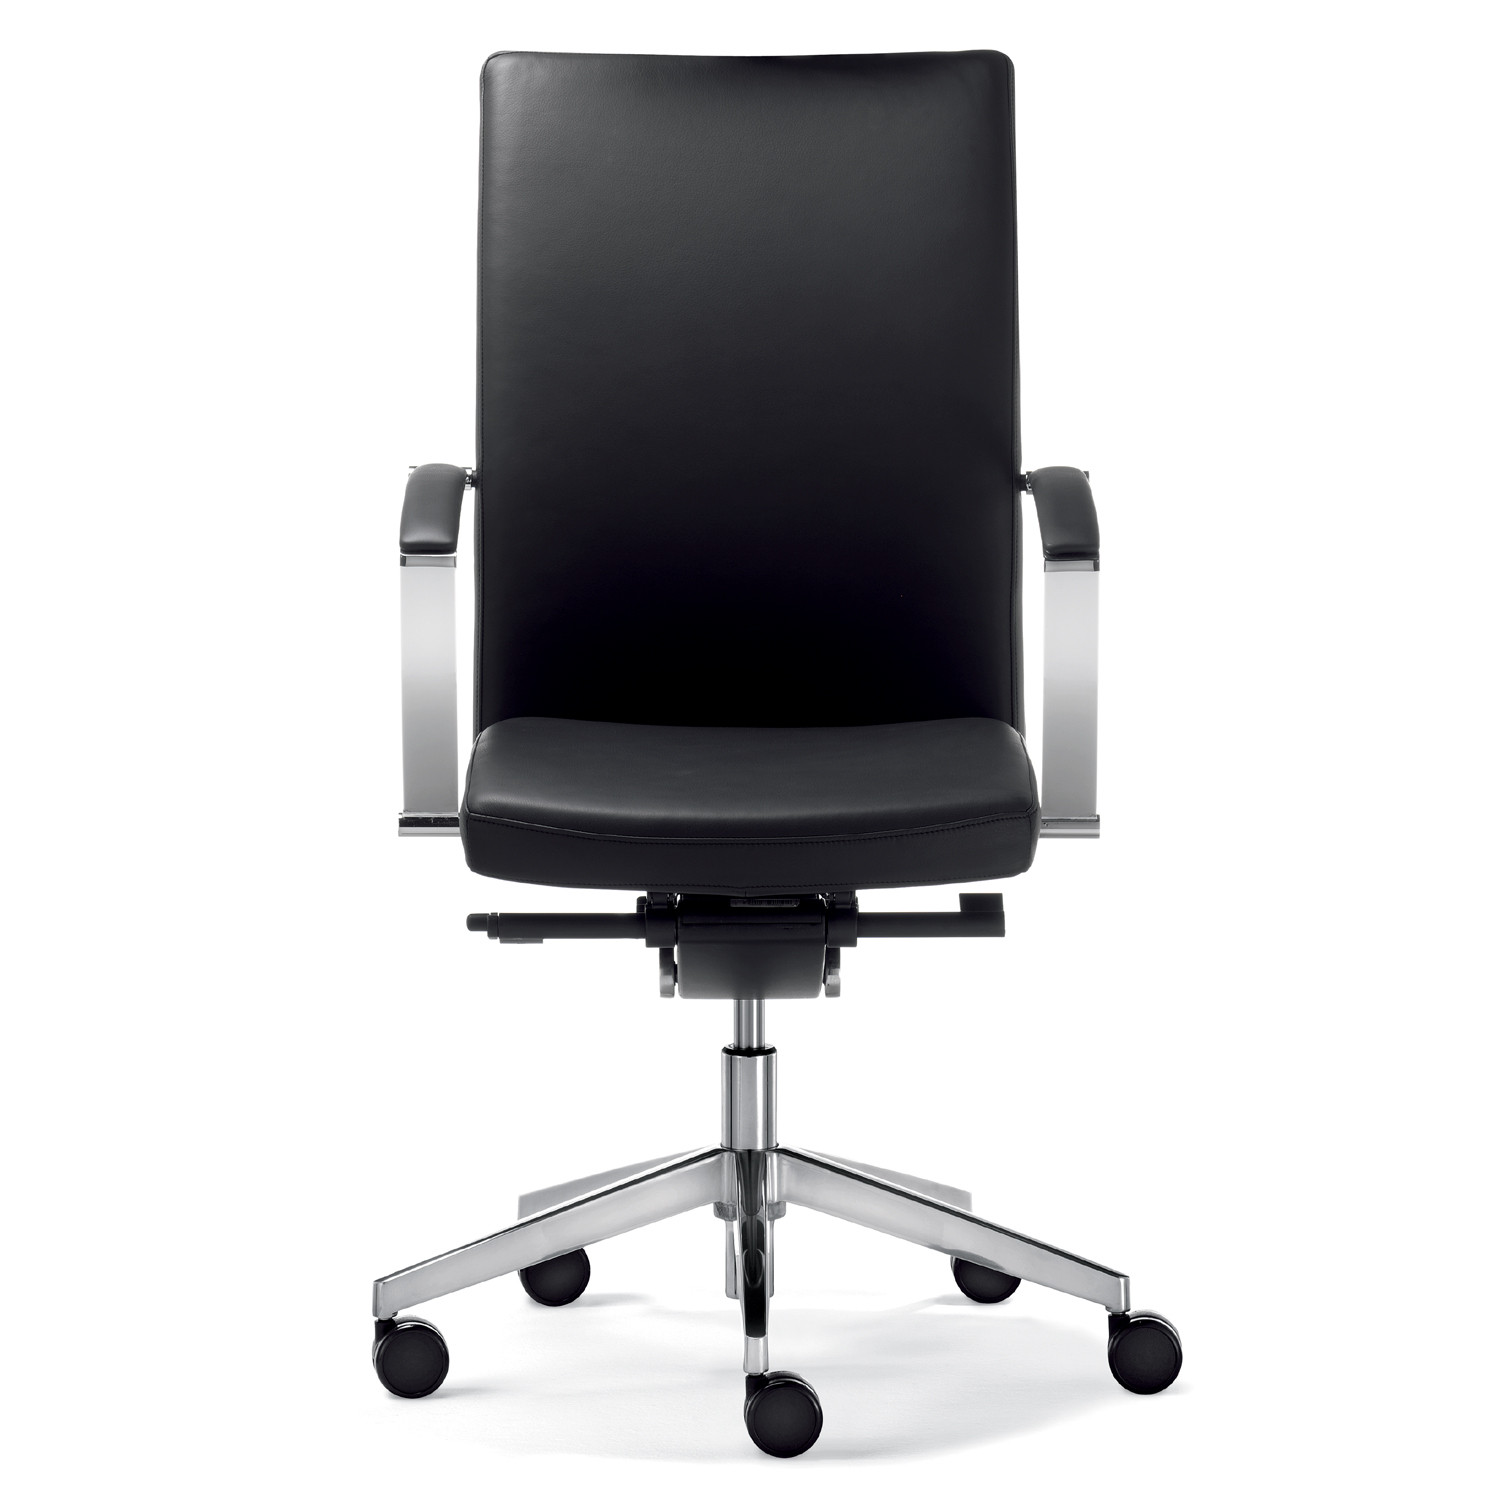 Fair Play Executive Desk Chair